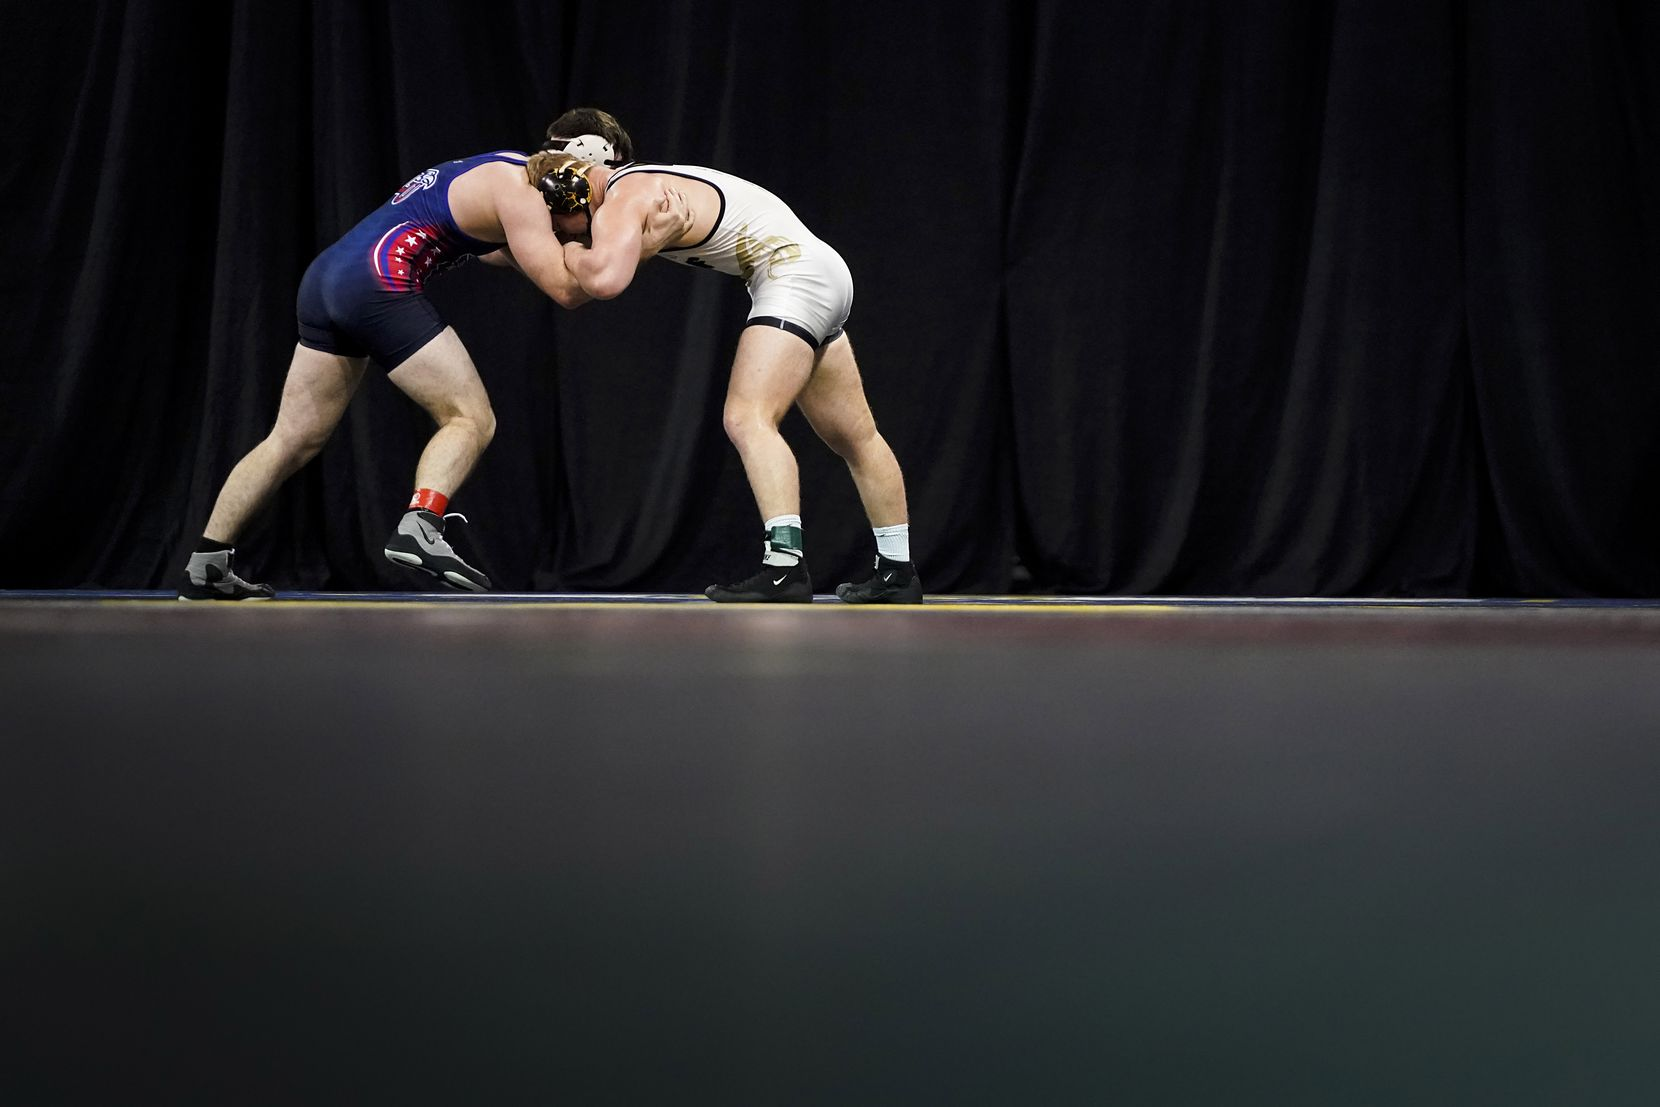 Jarrod Smiley of the University Of Central Florida (facing) wrestles Ethan Martin of Liberty University in a 184 lbs semifinal during the NCWA national championships at the Allen Events Center on Friday, March 13, 2020, in Allen, Texas.